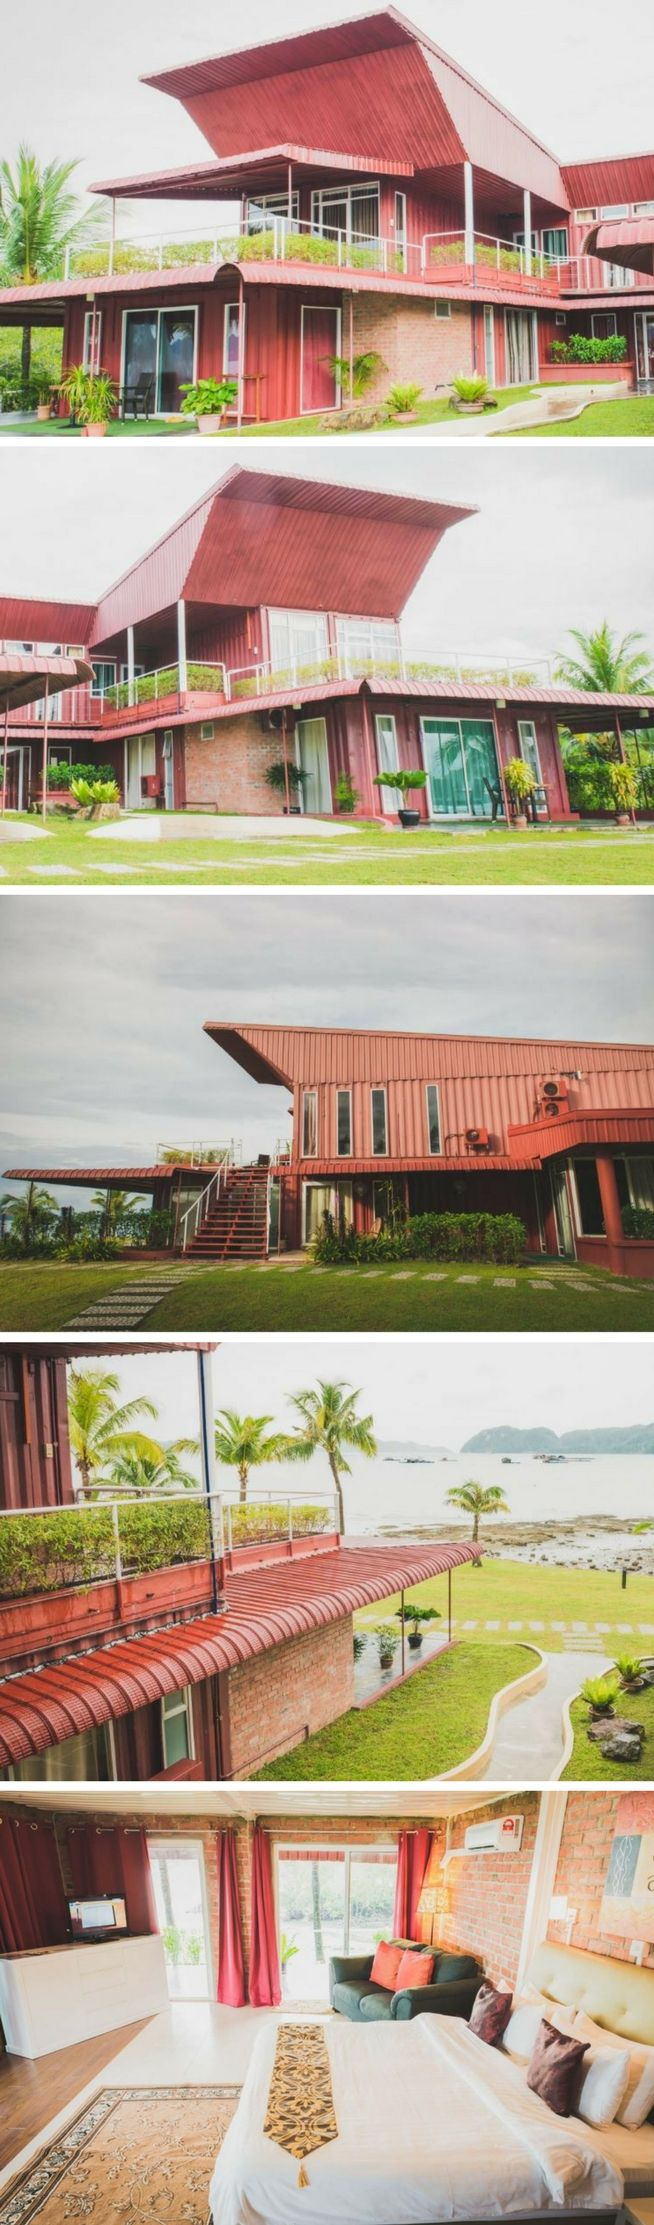 The ocean residenceus container house luxury shipping container